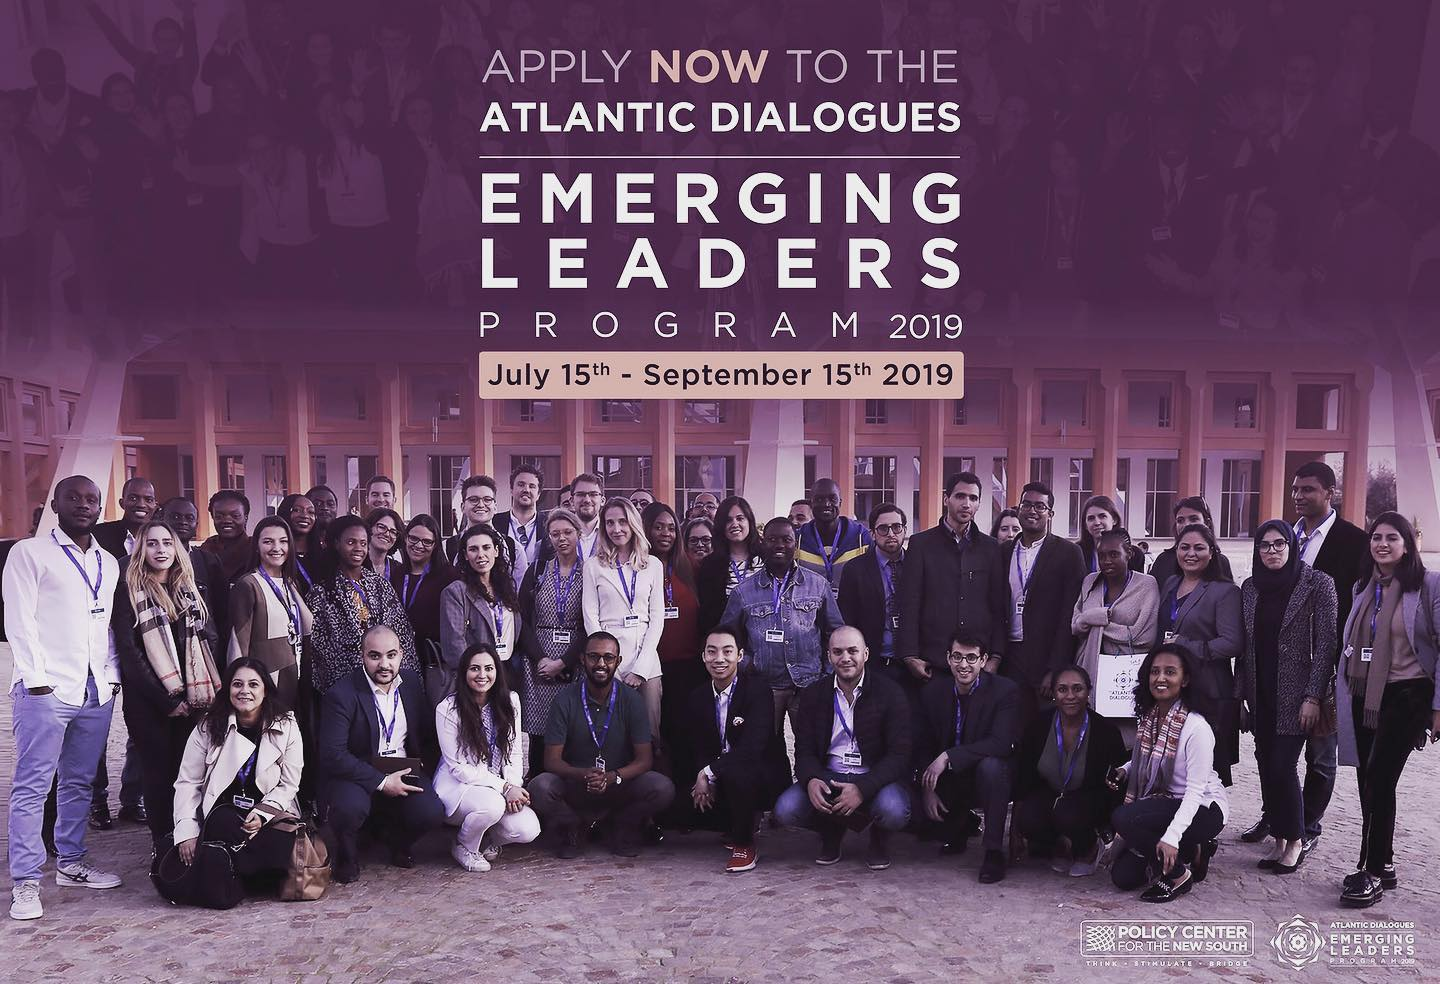 Call for Applications: The Atlantic Dialogues Emerging